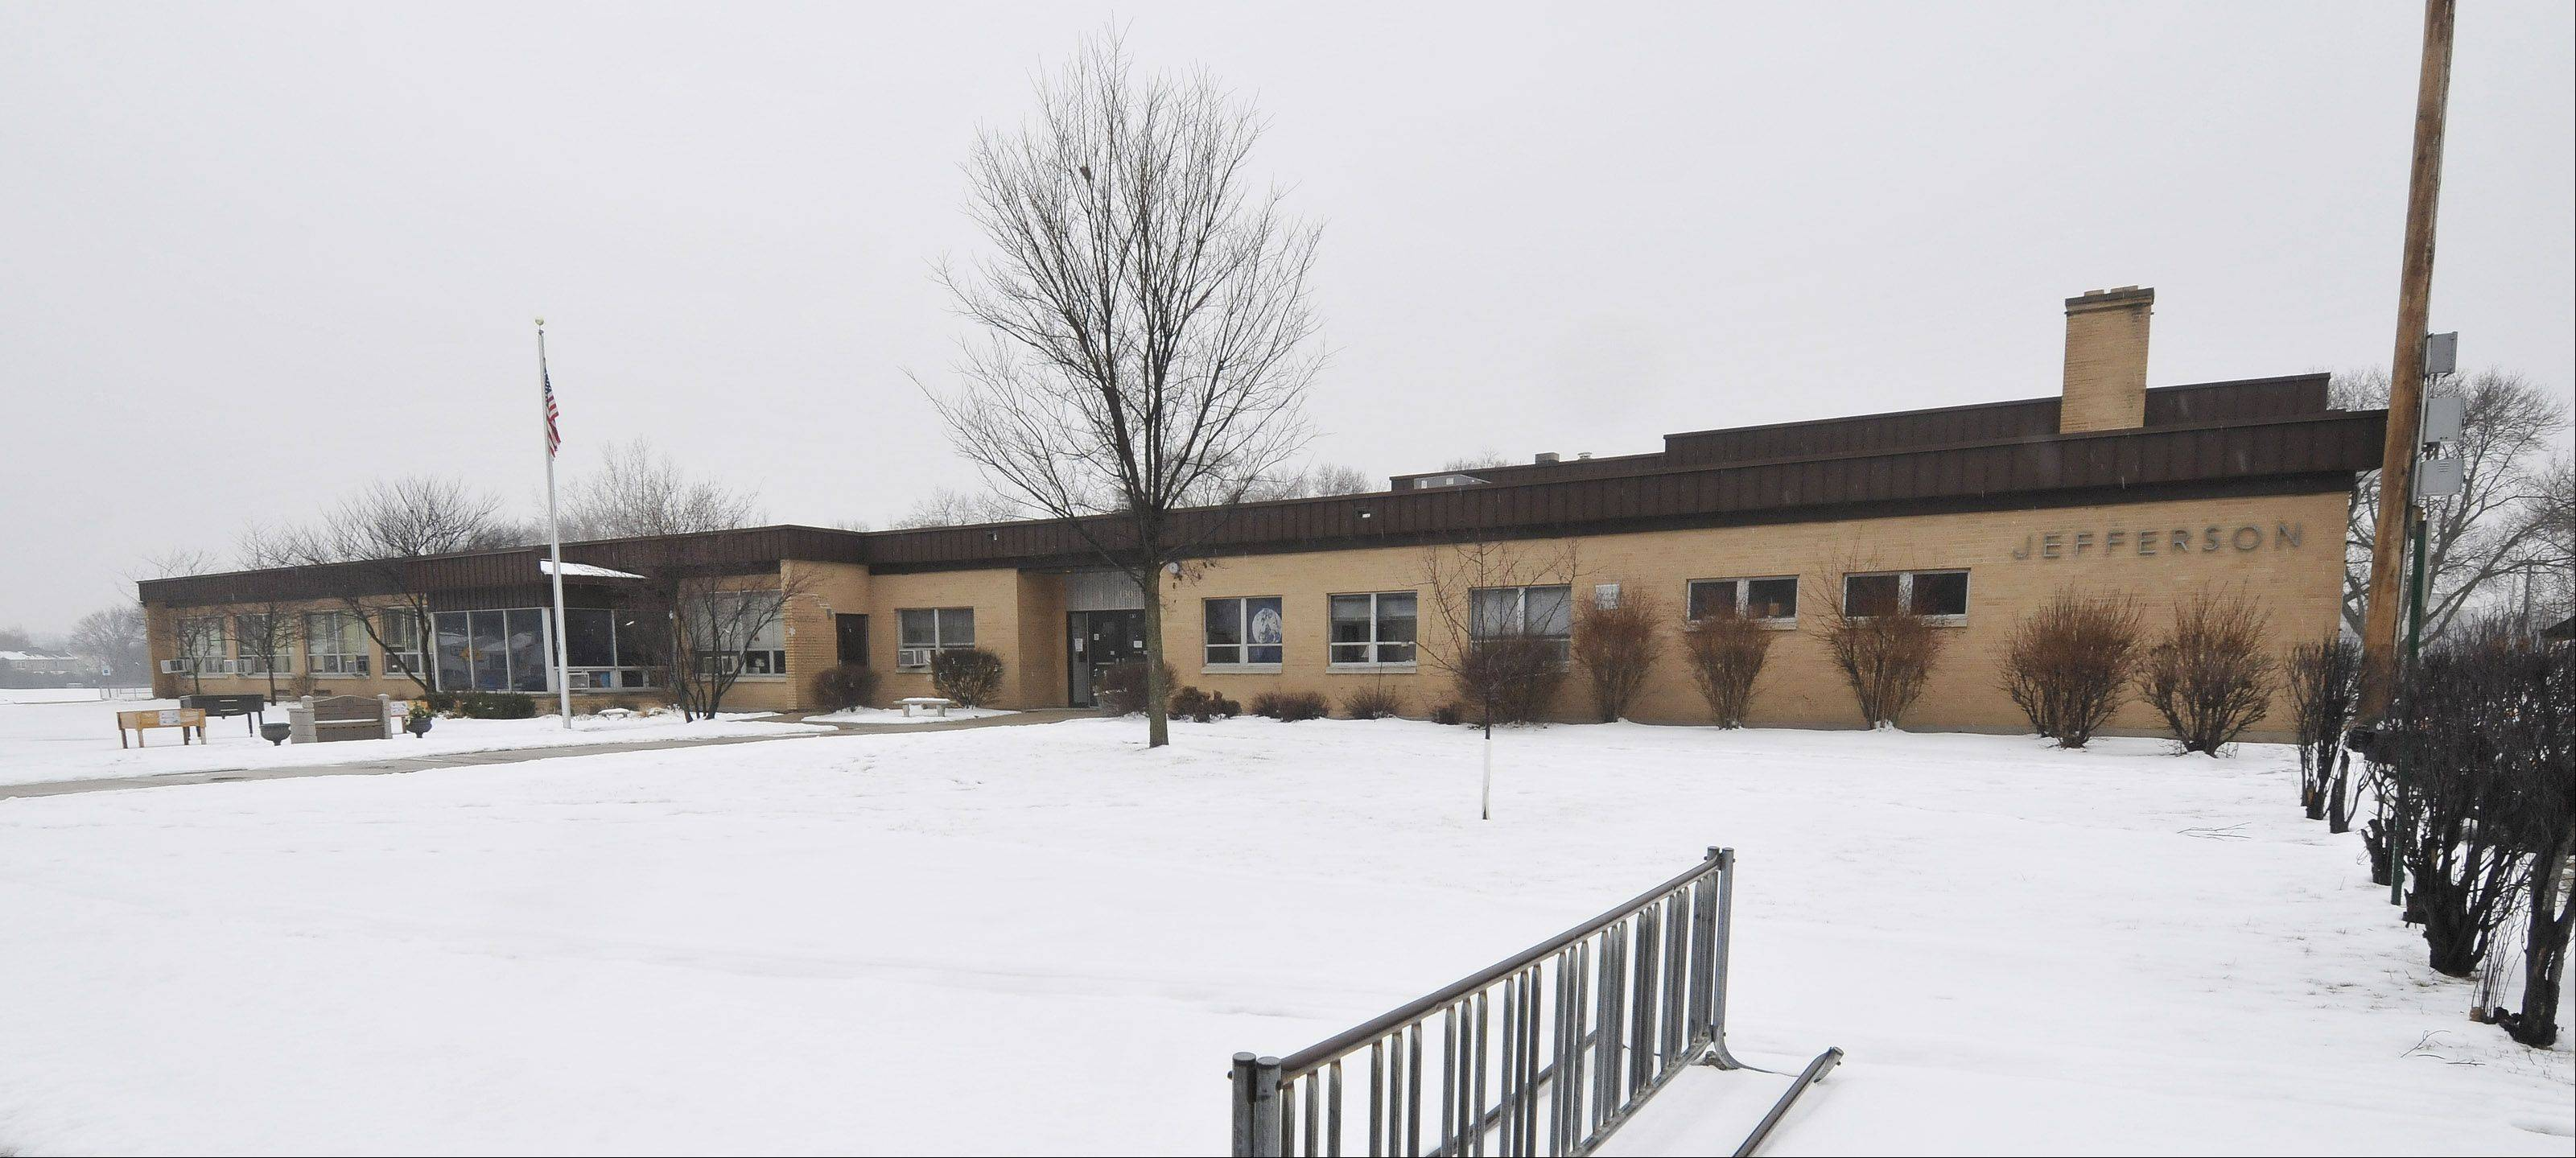 Wheaton Warrenville Unit District 200 is seeking permission from voters to borrow $17.6 million to build a new Jefferson Early Childhood Center and demolish the existing structure in Wheaton.